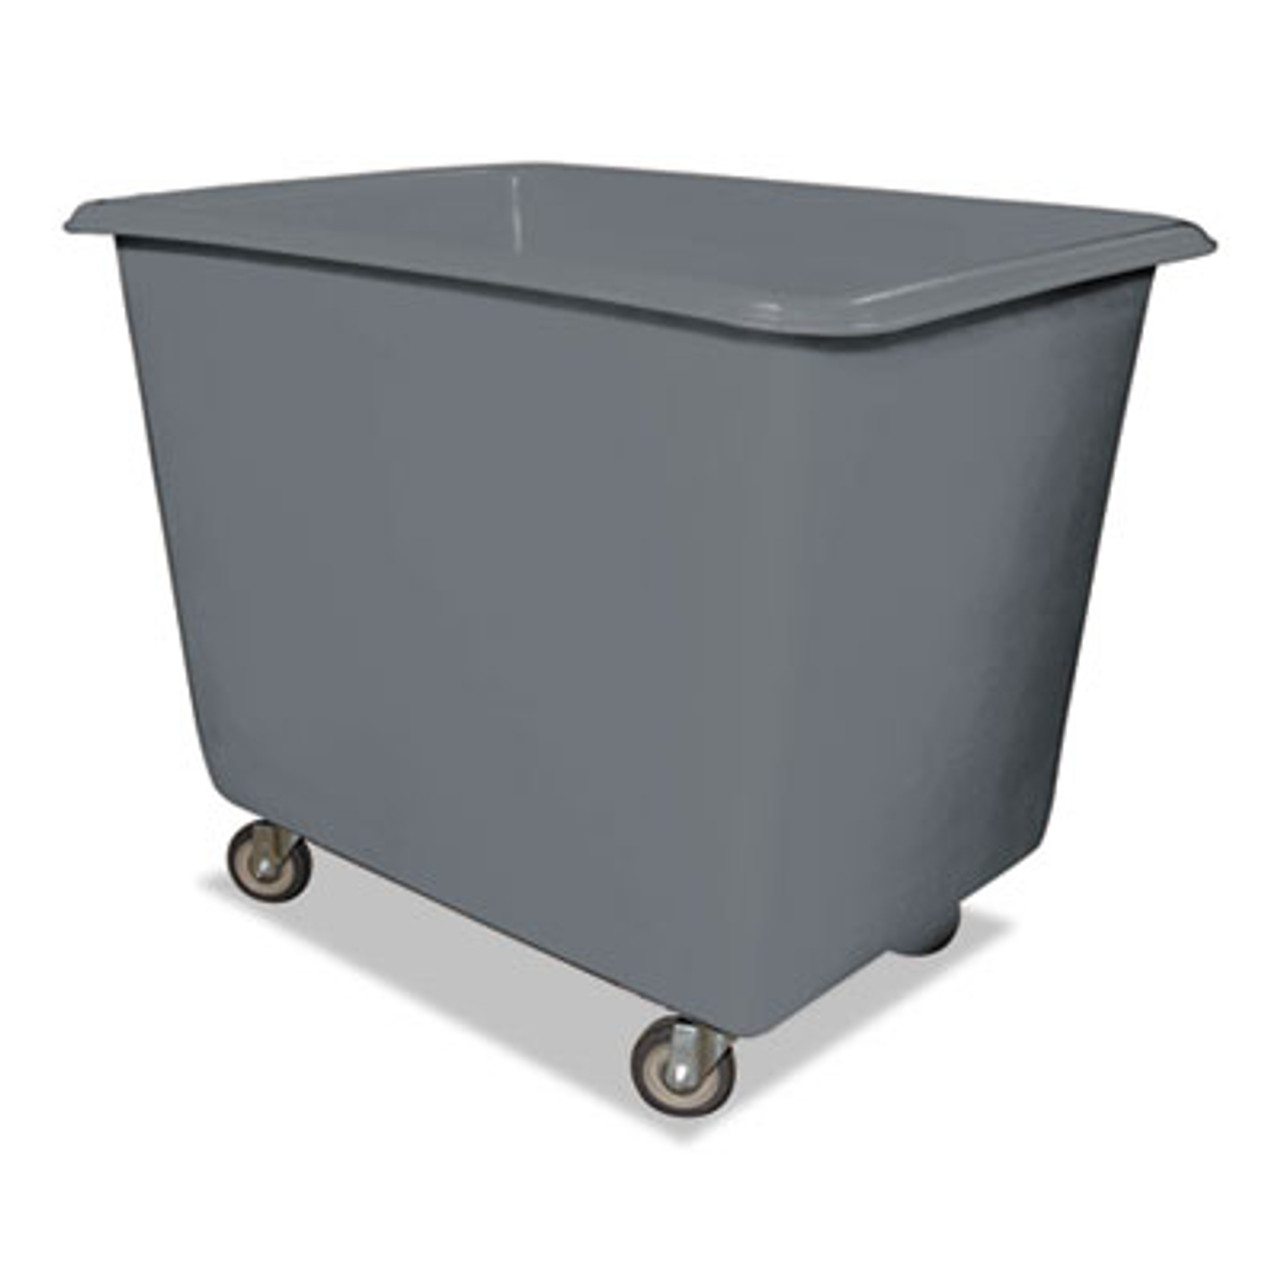 Royal 8 Bushel Poly Truck w/Galvanized Steel Base, 26 x 38 x 28 1/2, 800 lbs Cap, Gray